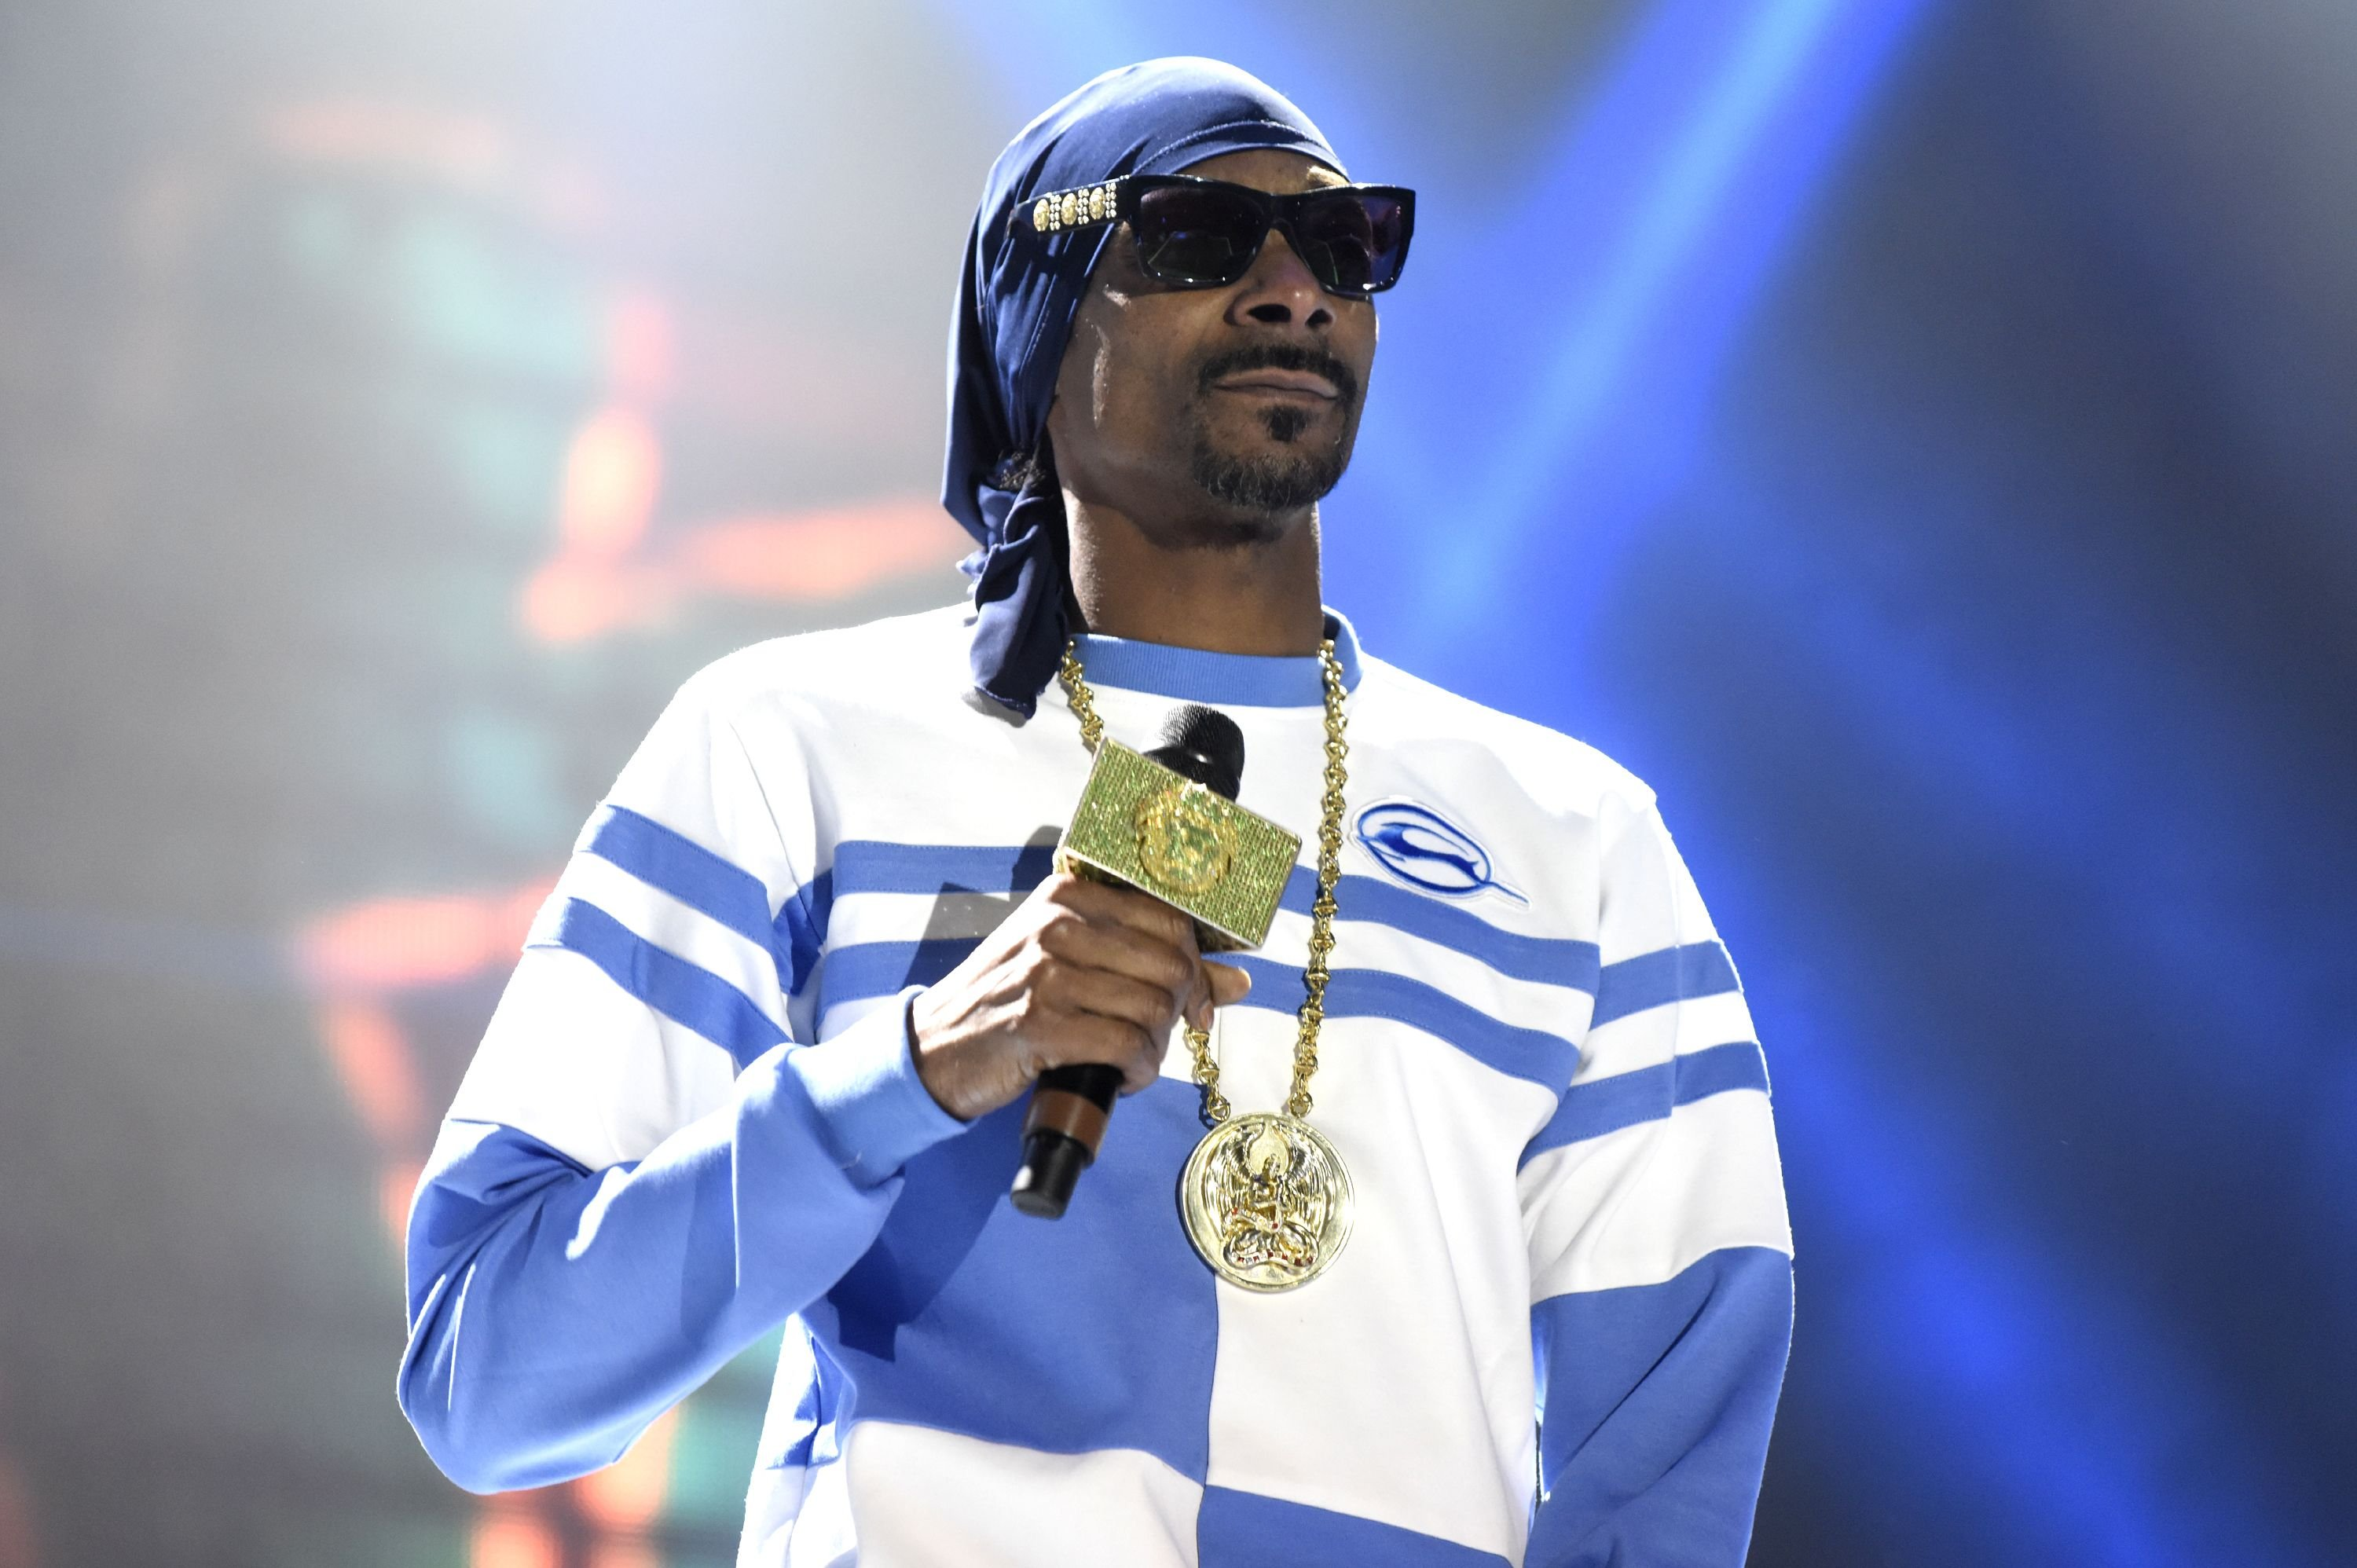 Snoop Dogg at the PowWow Jam at the 2018 Okeechobee Music Festival at Sunshine Grove on March 3, 2018   Photo: Getty Images